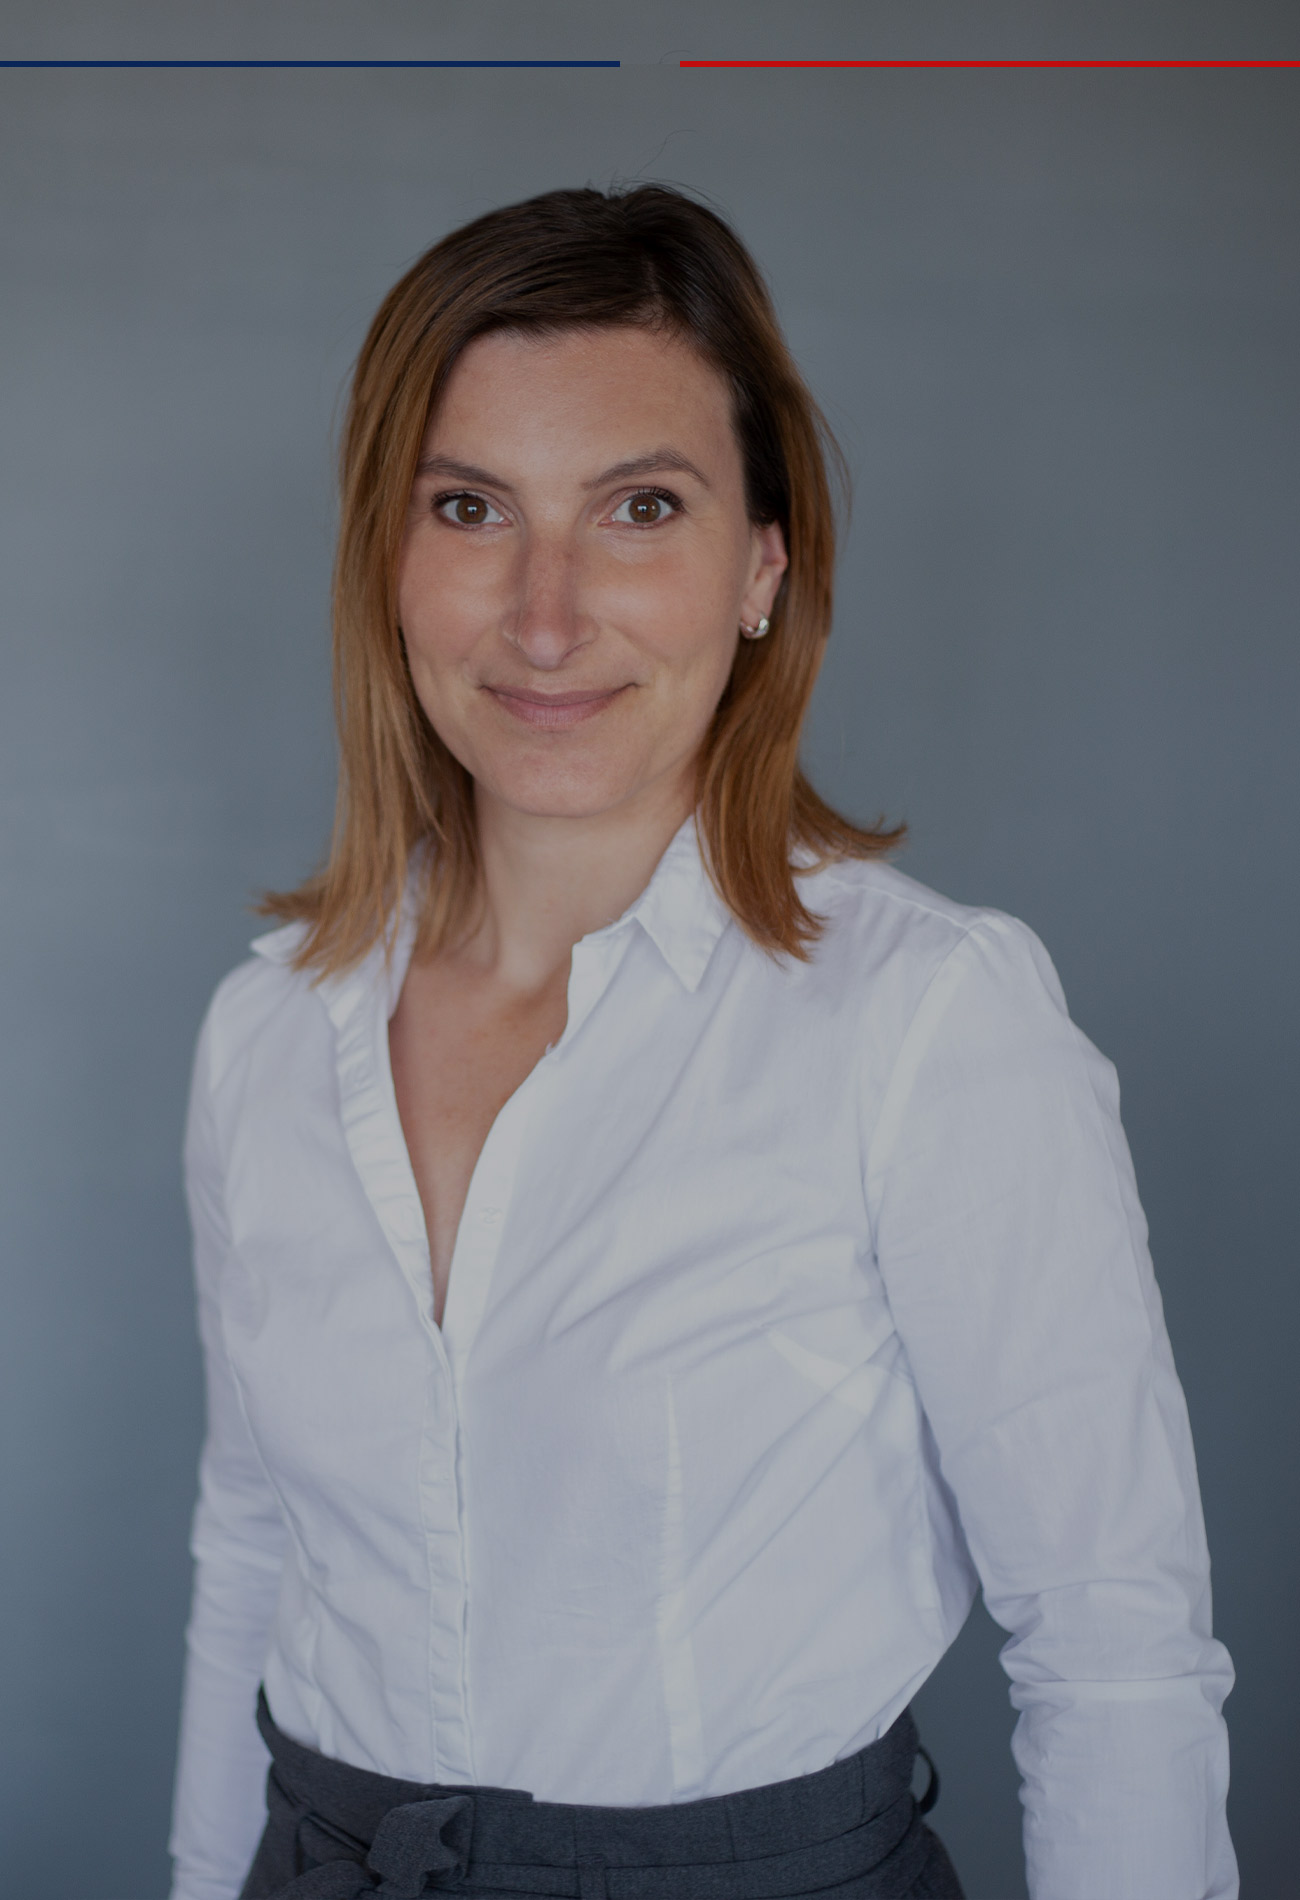 VINCENTLEBAILLY-ARCHITECTE-EQUIPE-JULIE-LEBAILLY